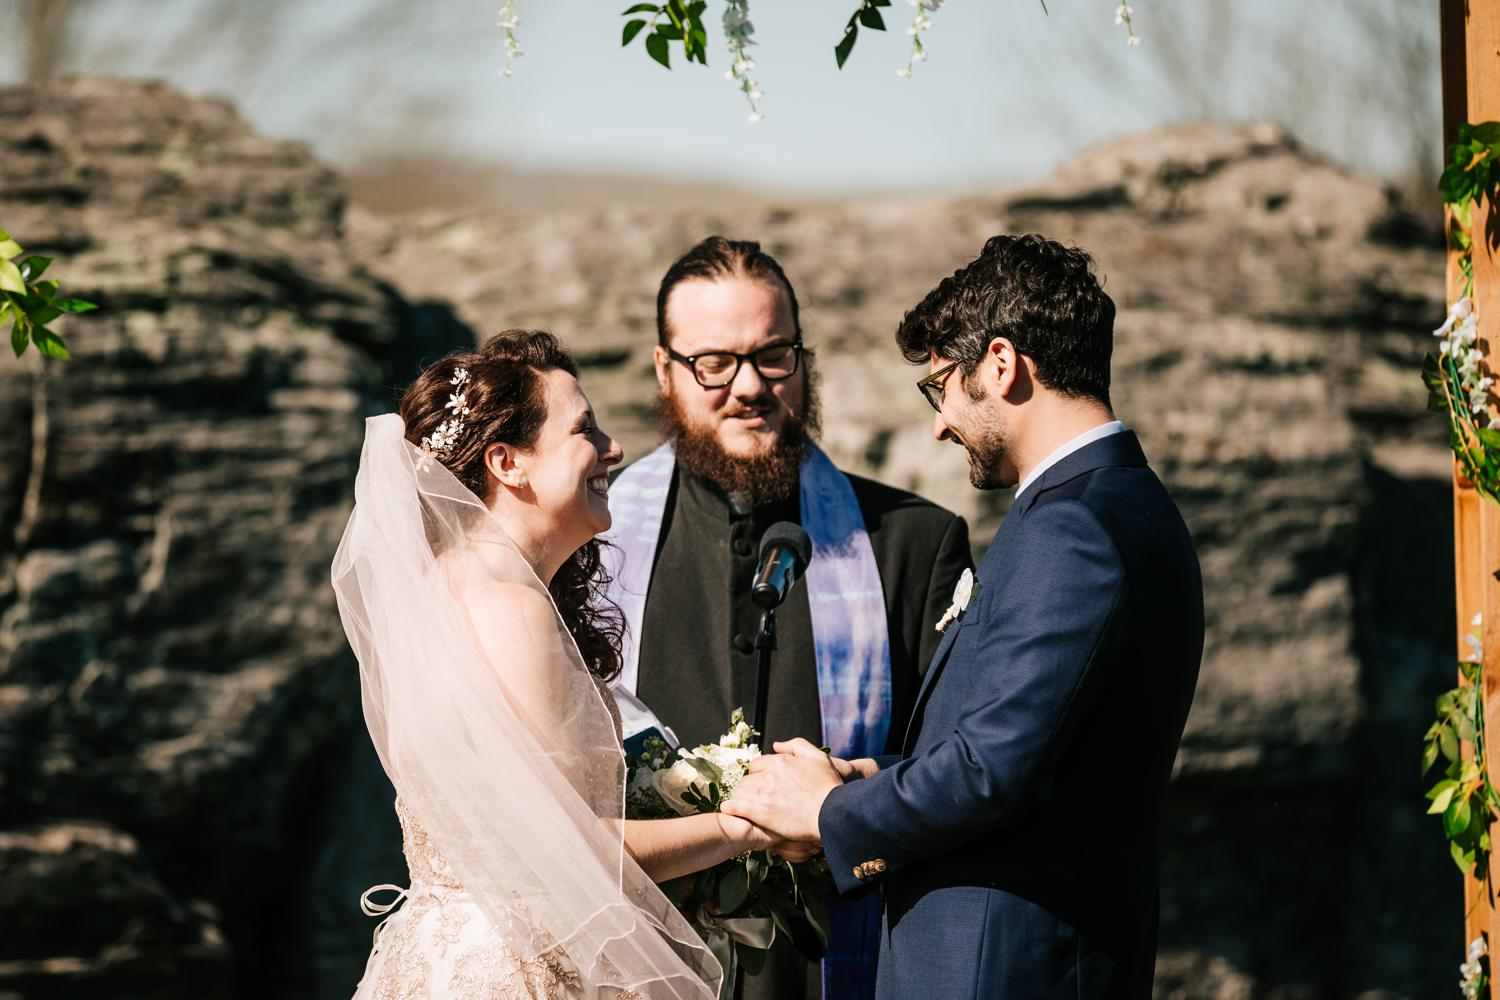 Bride and groom exchanging rings at outdoor wedding in Corrales